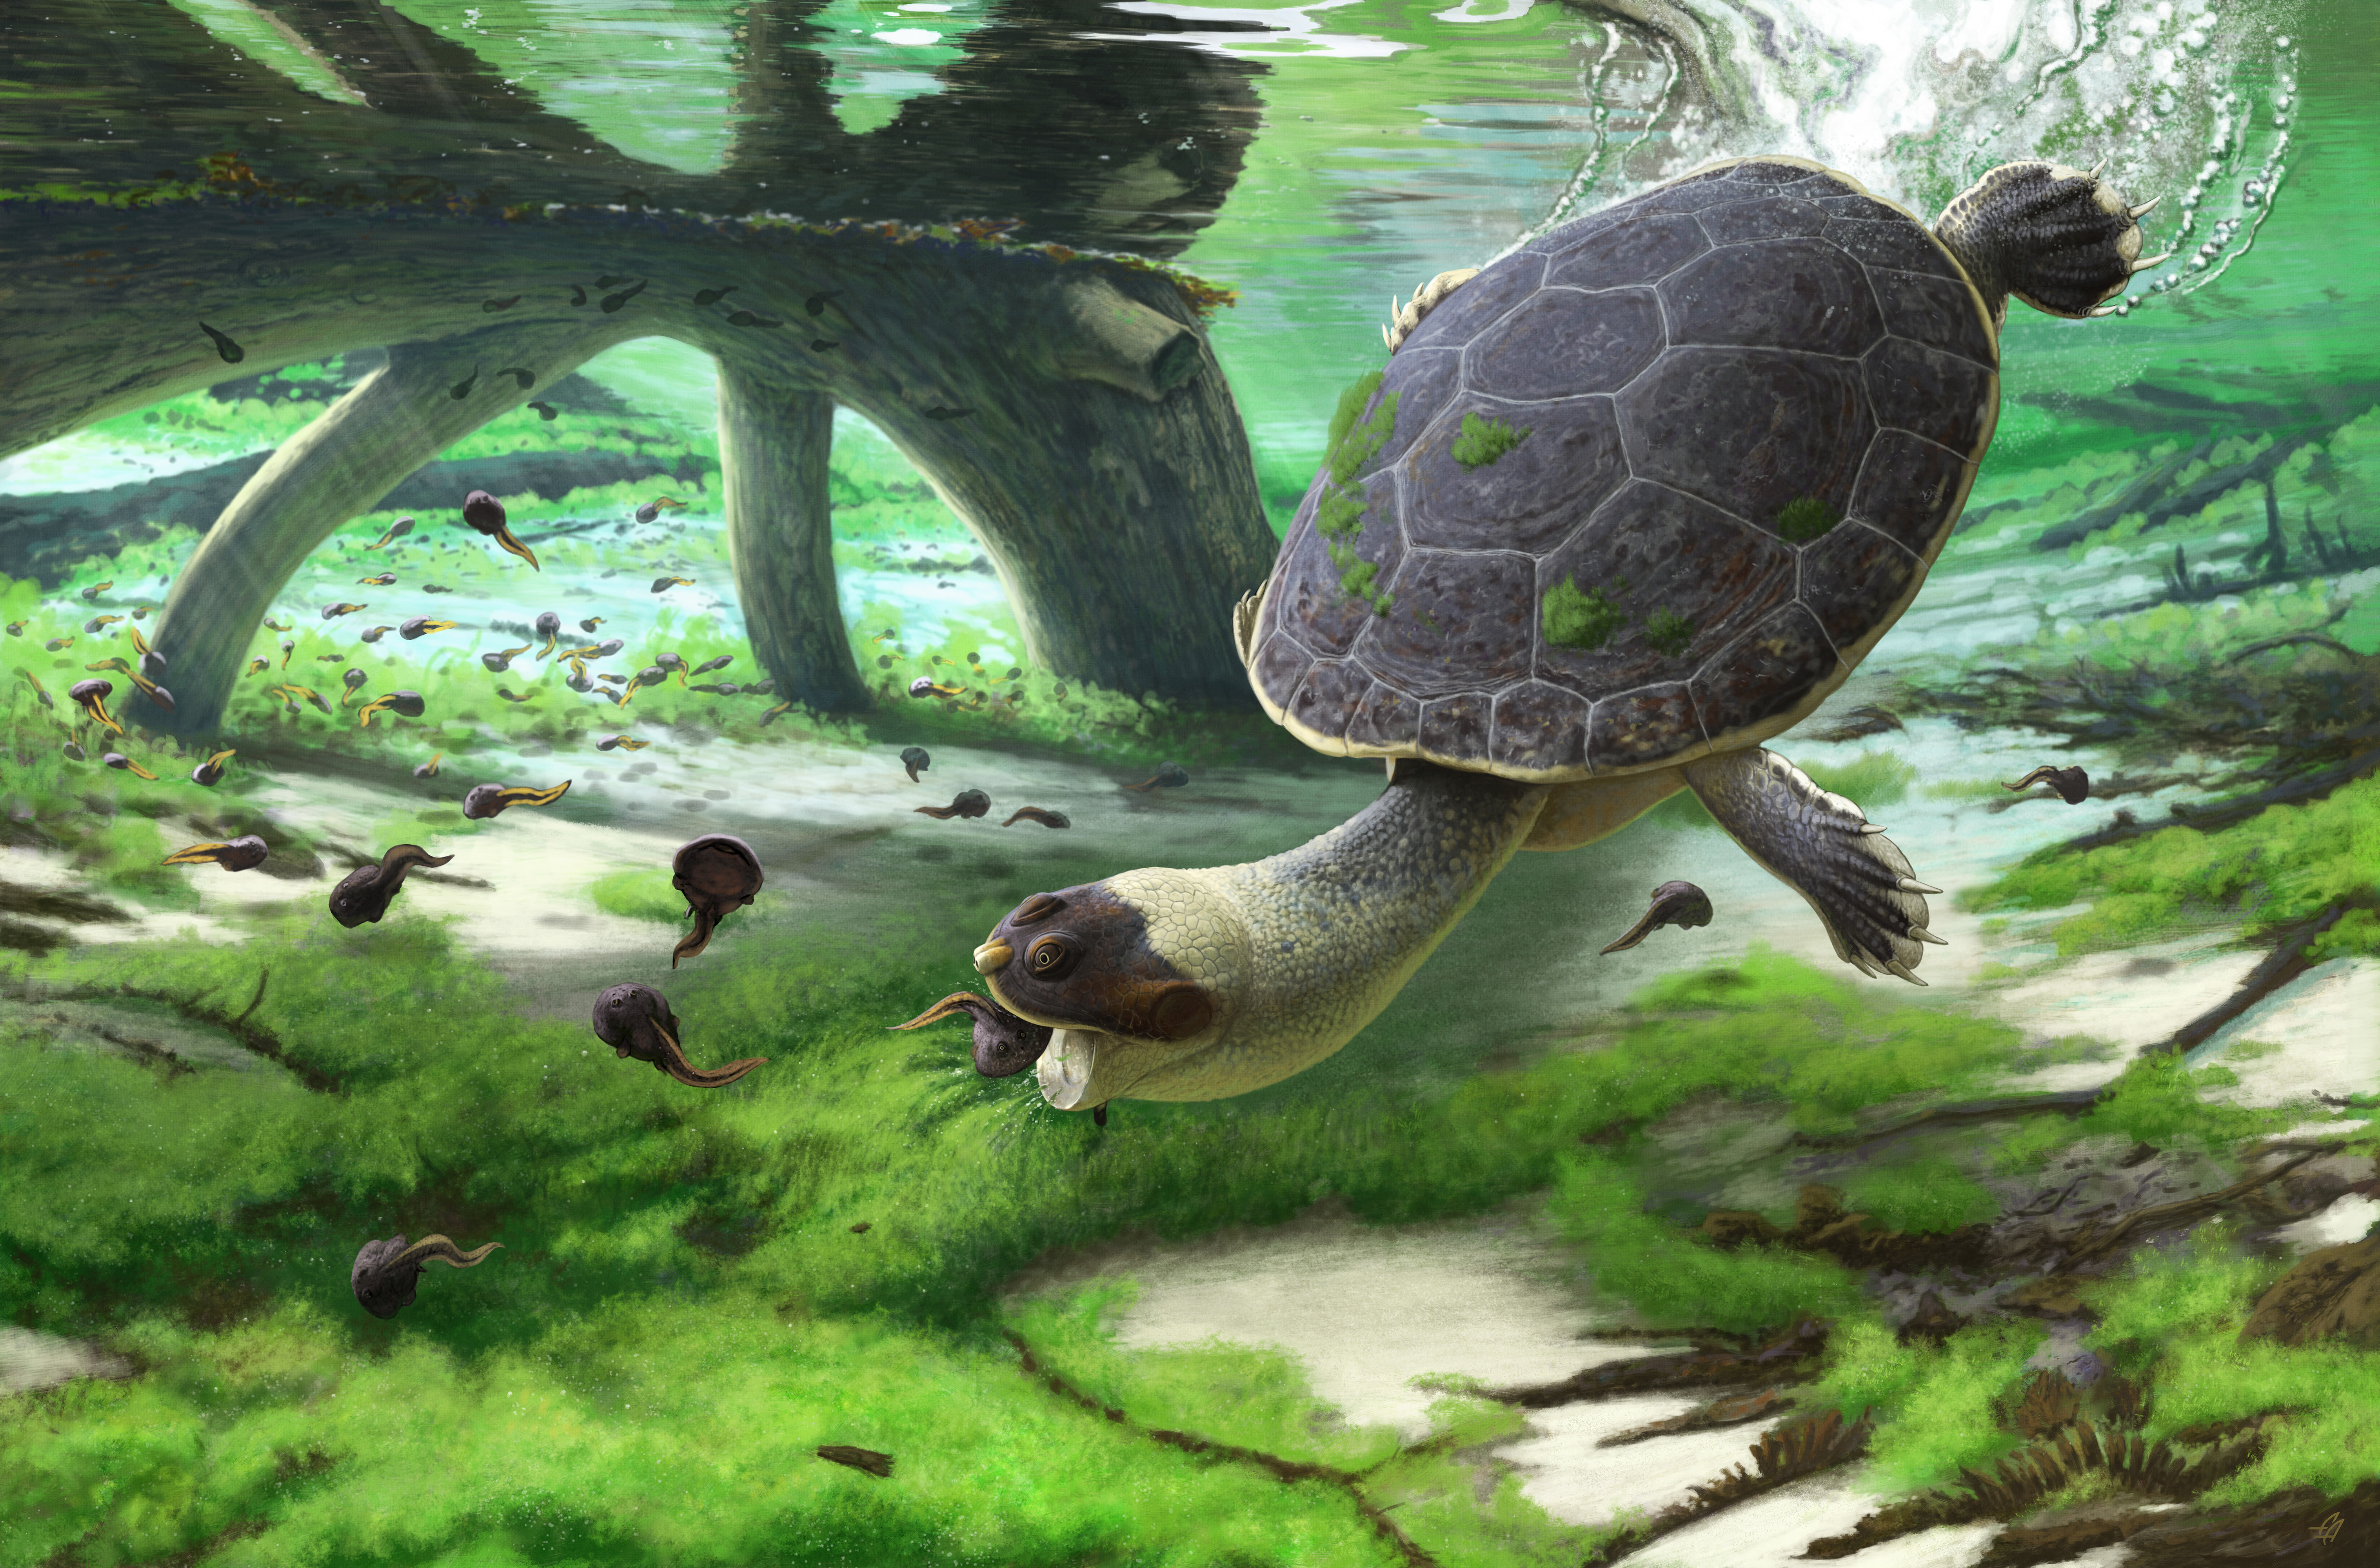 Ancient turtle with a frog face sucked down its prey millions of years ago thumbnail